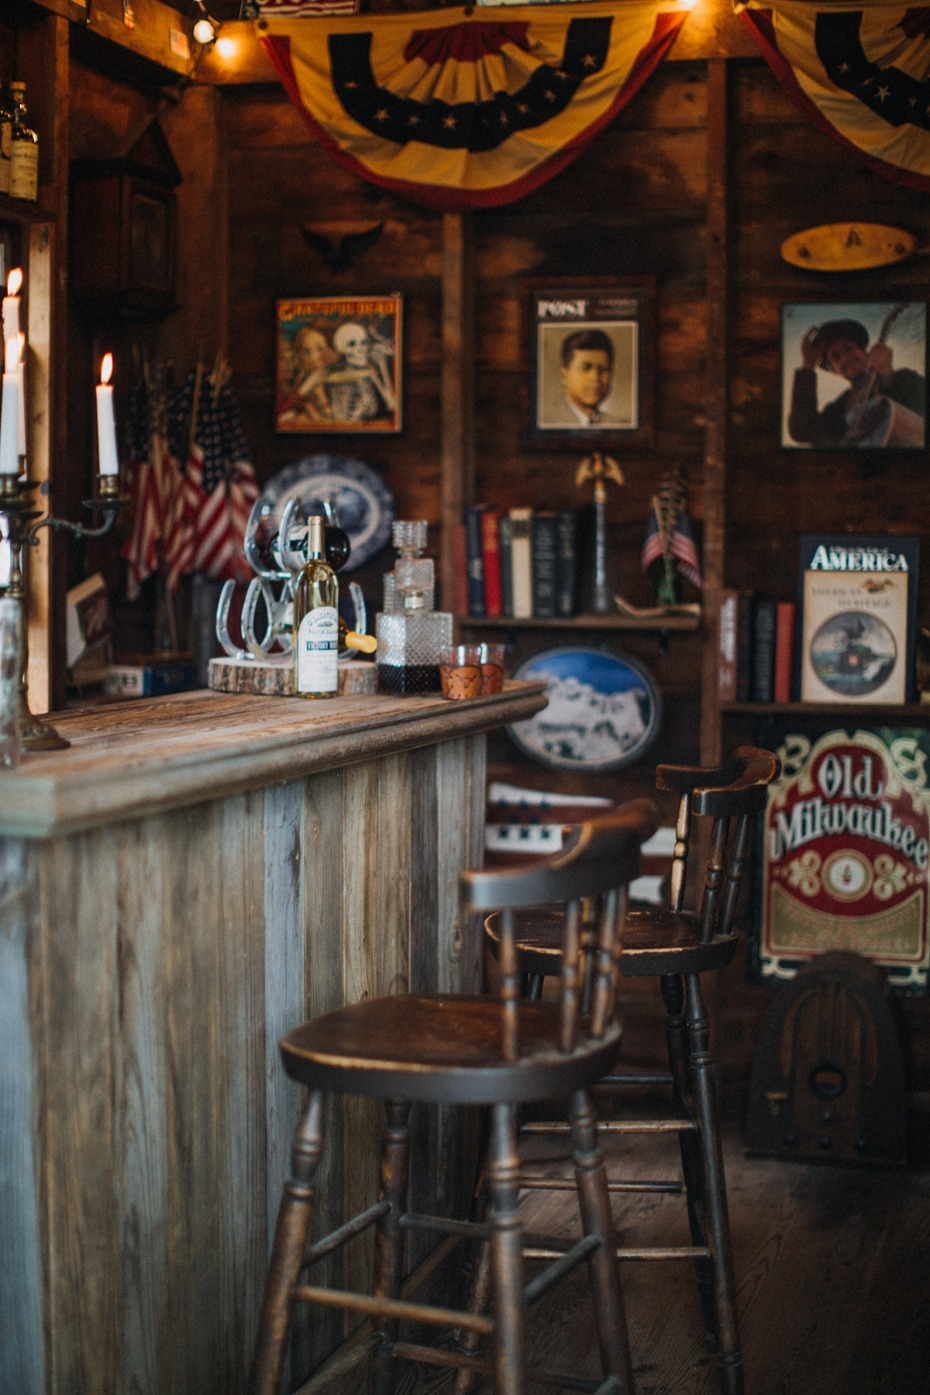 The Colonial vintage Americana bar